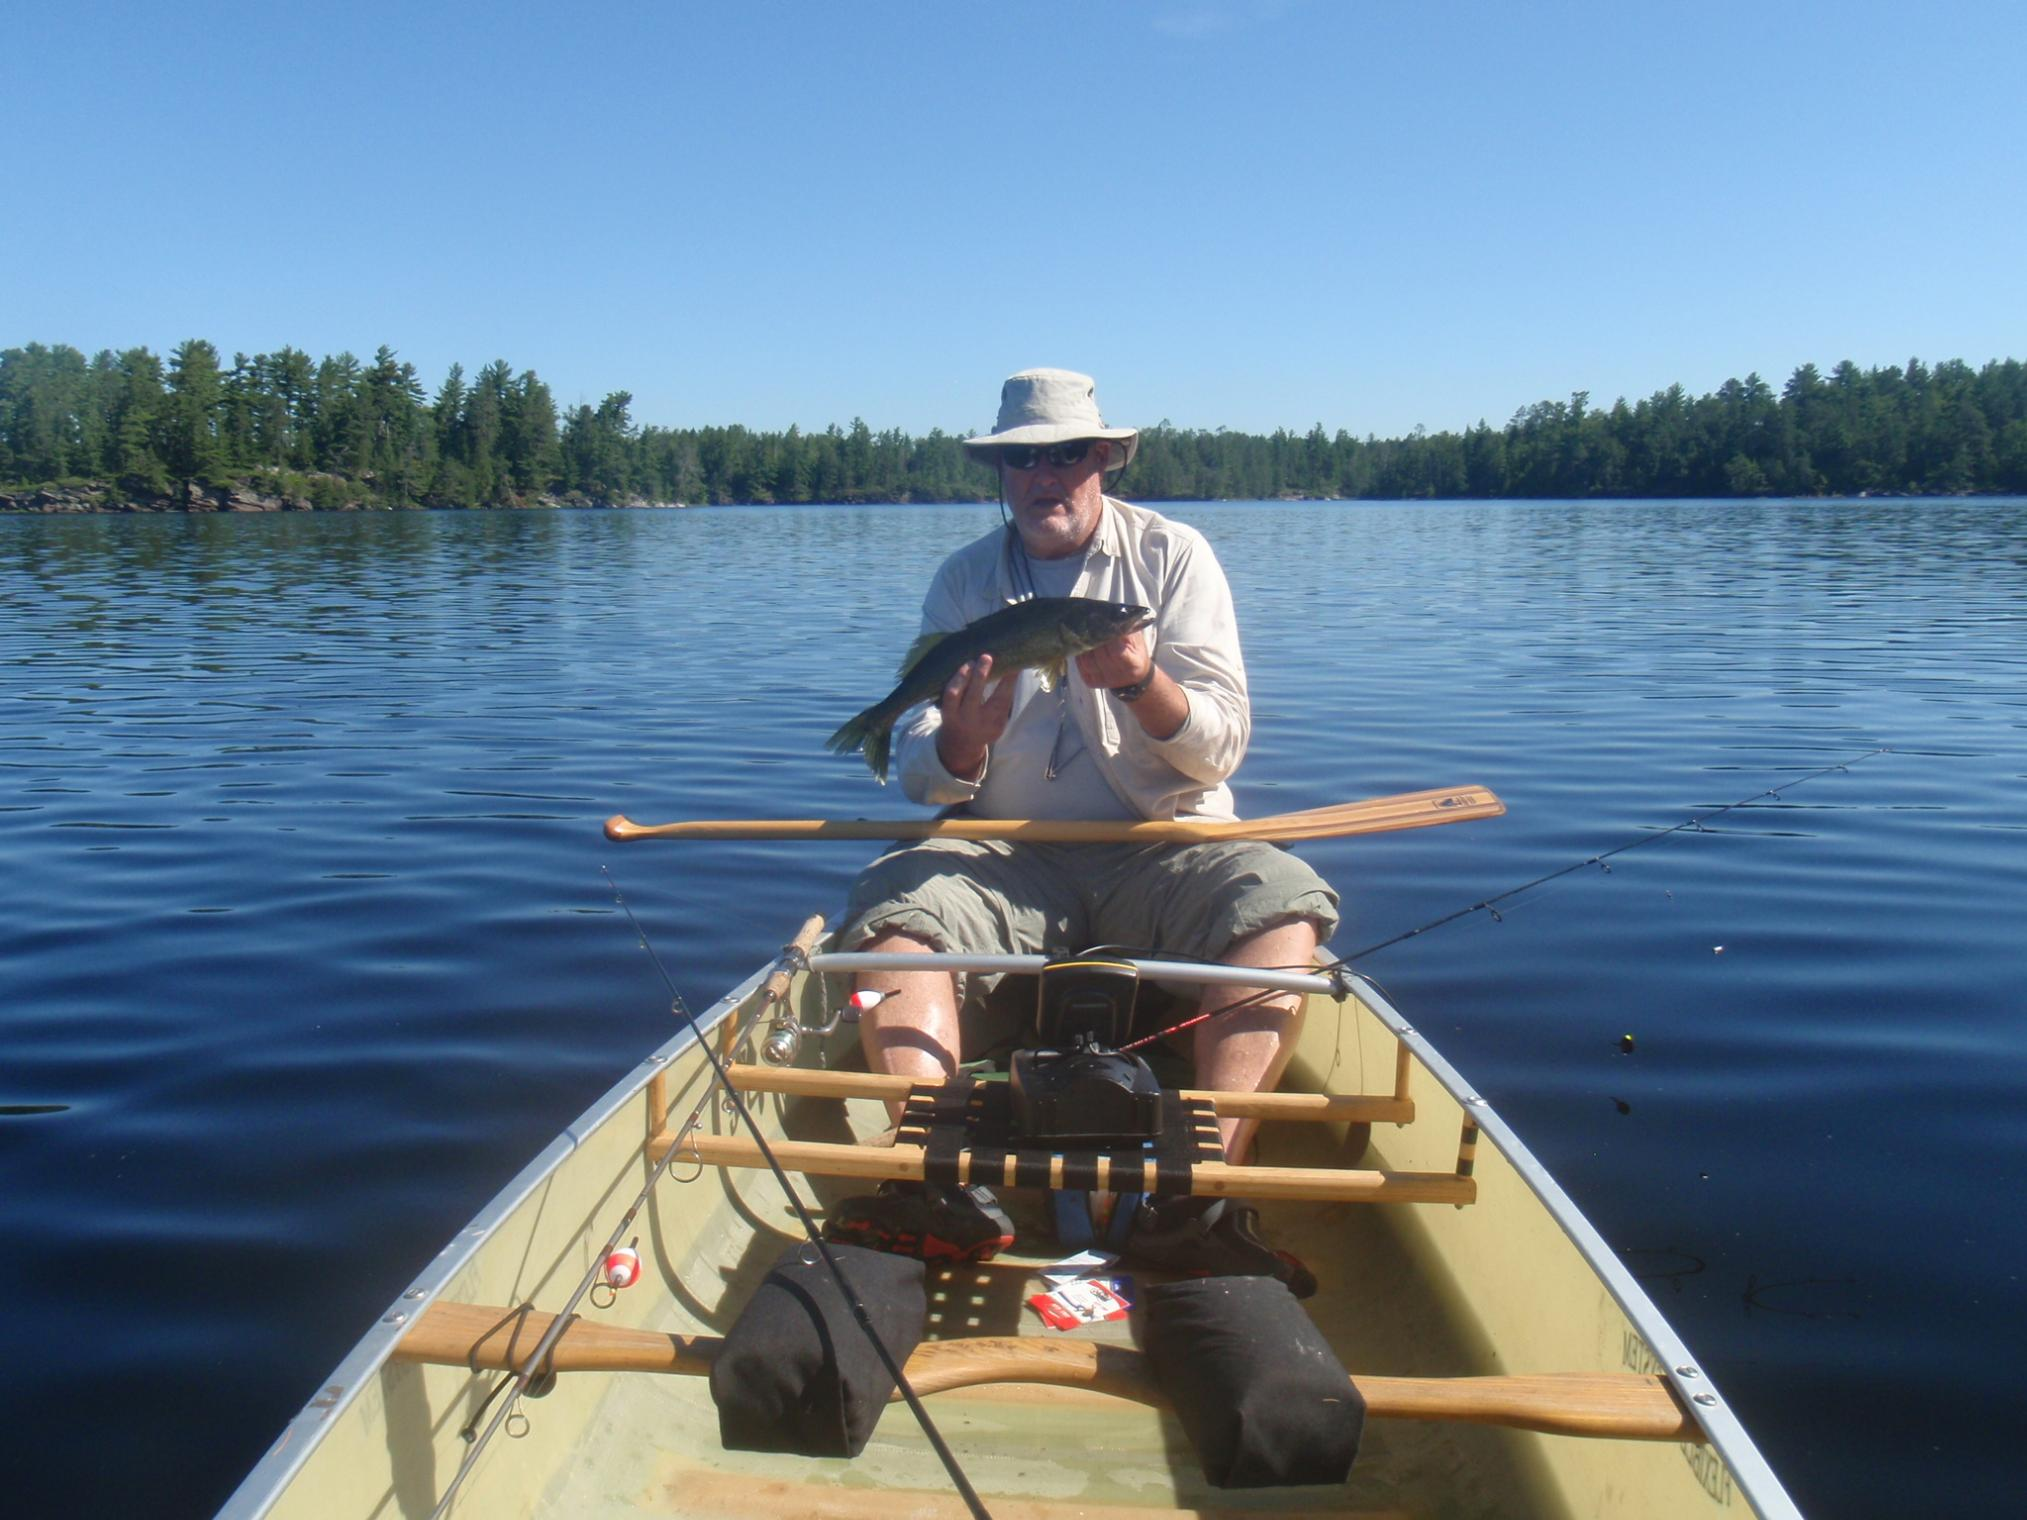 Bwca little indian sioux north boundary waters fishing forum for Devils lake fishing forum